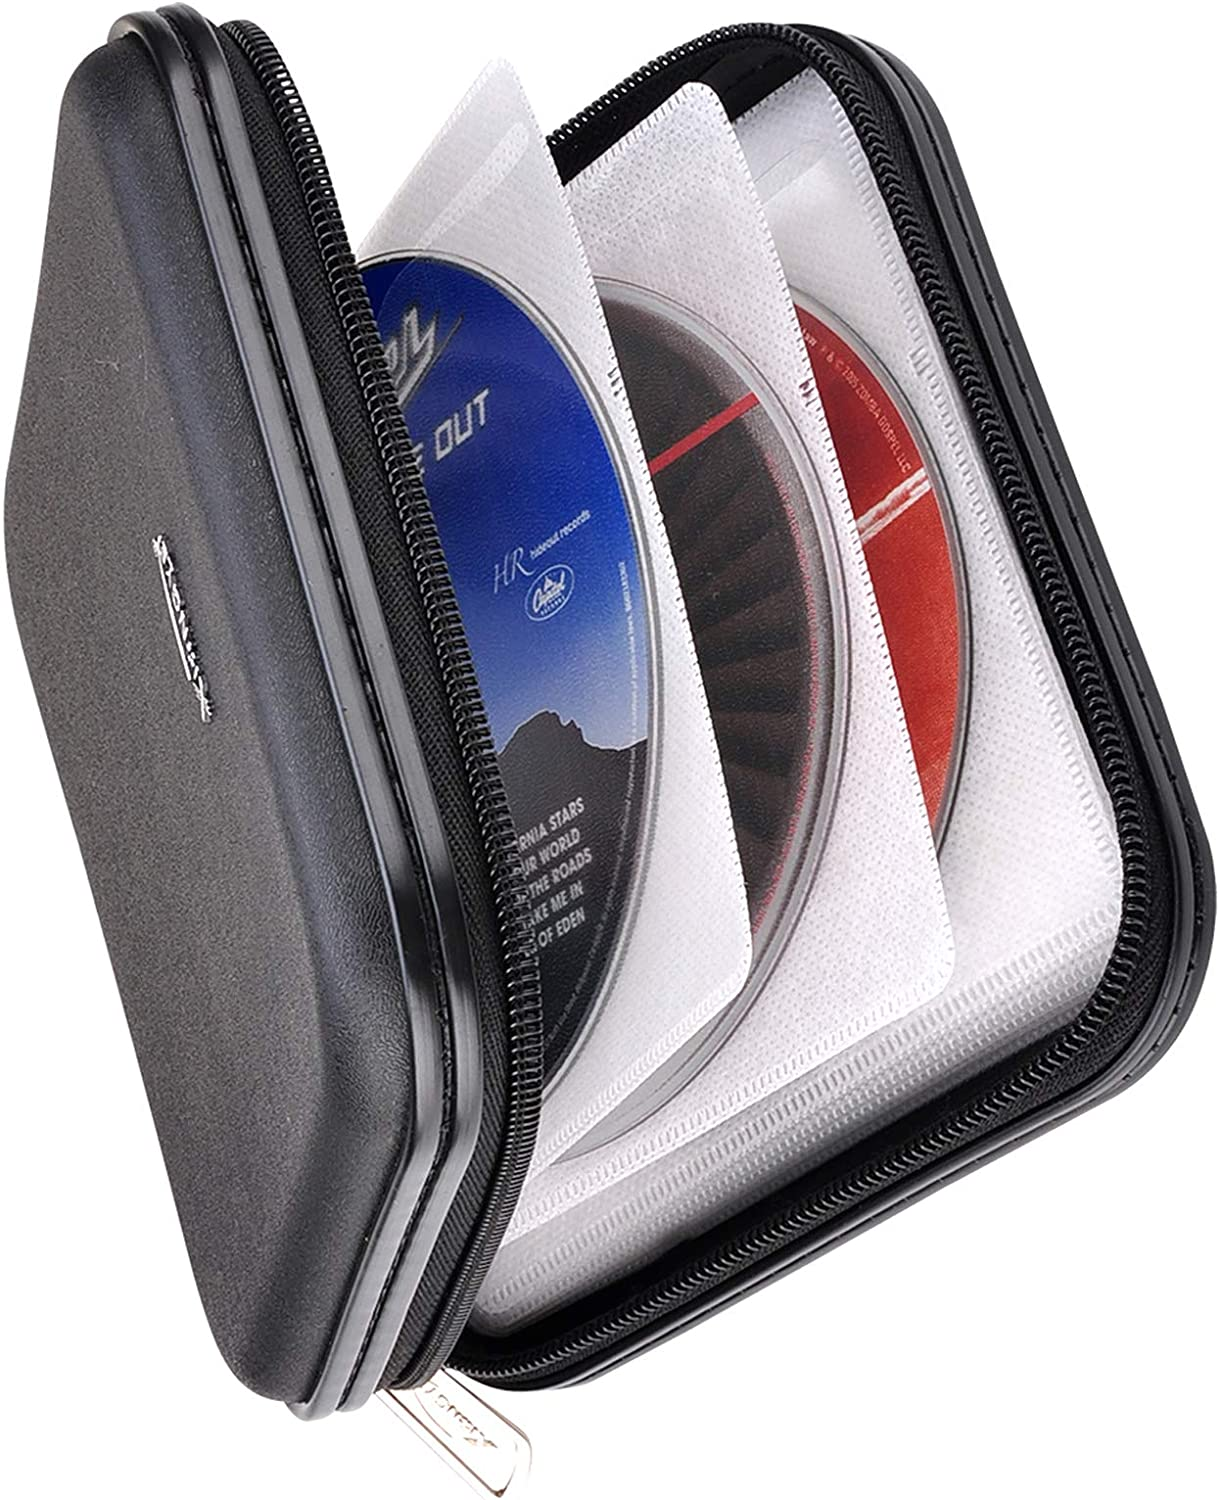 CD DVD Wallet XiongYe 32 Capacity Holde Duty Heavy Case Outlet sale Ranking TOP8 feature